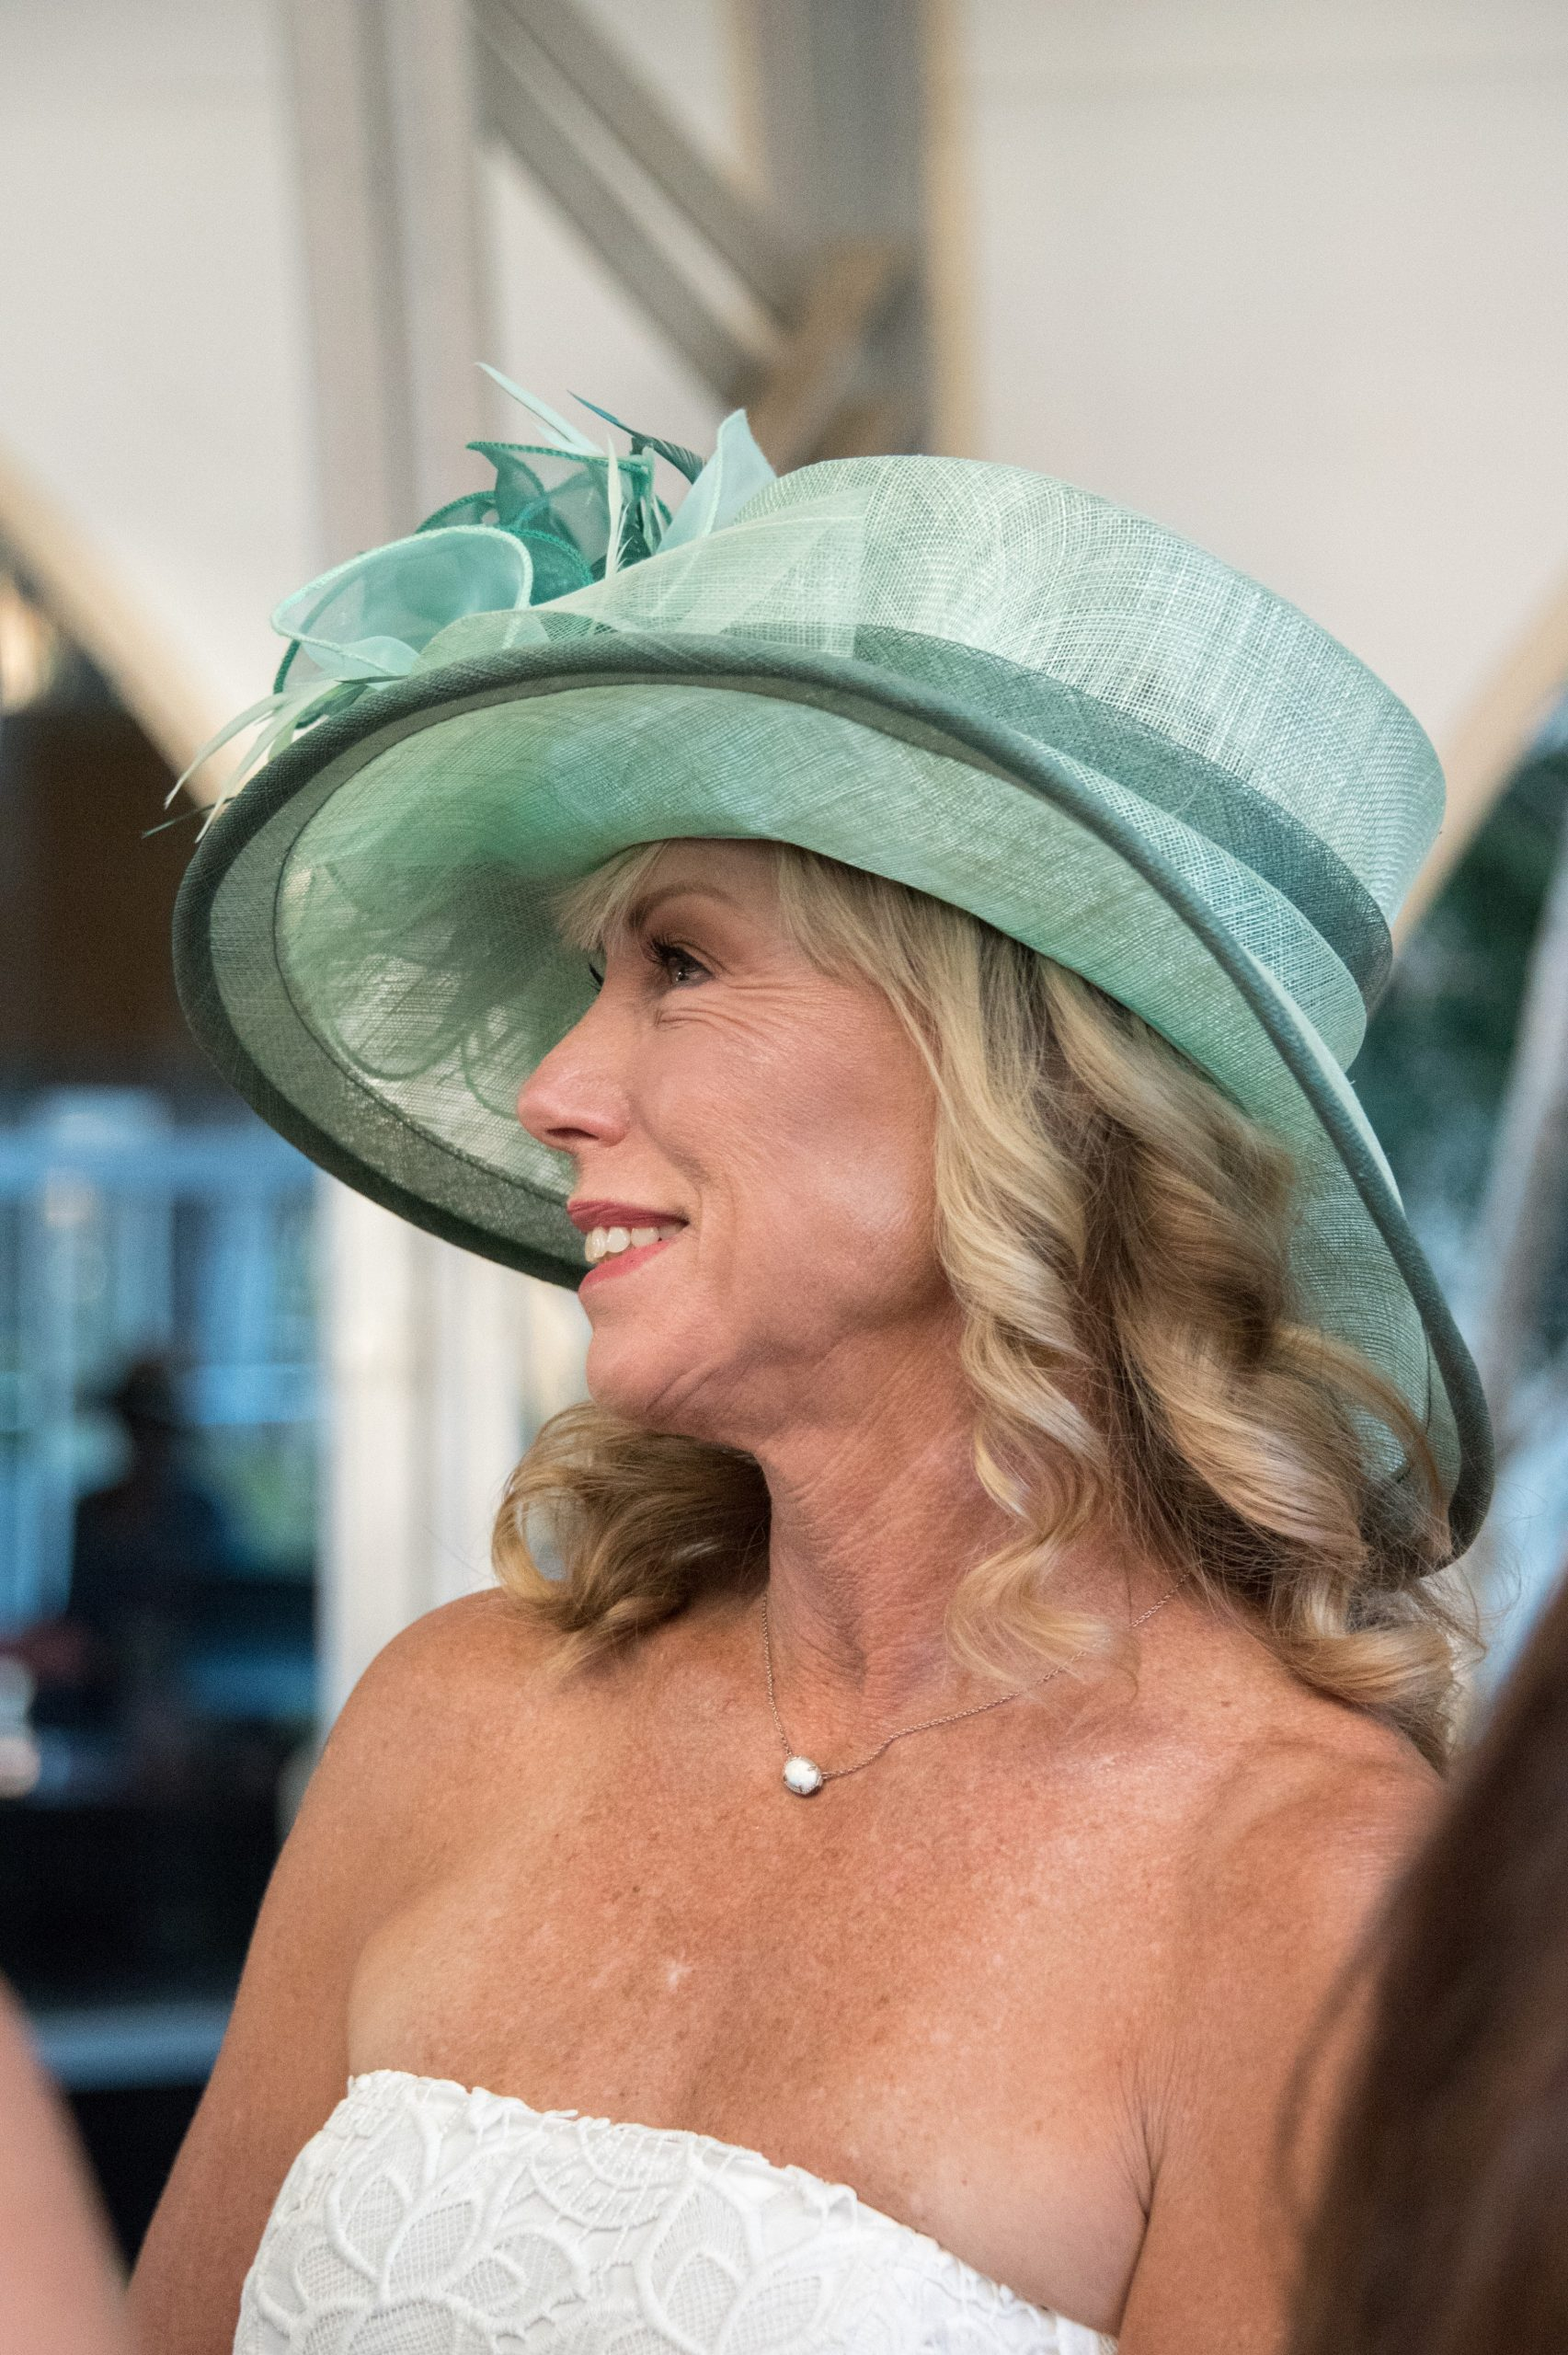 Photo of a woman in a green derby hat at